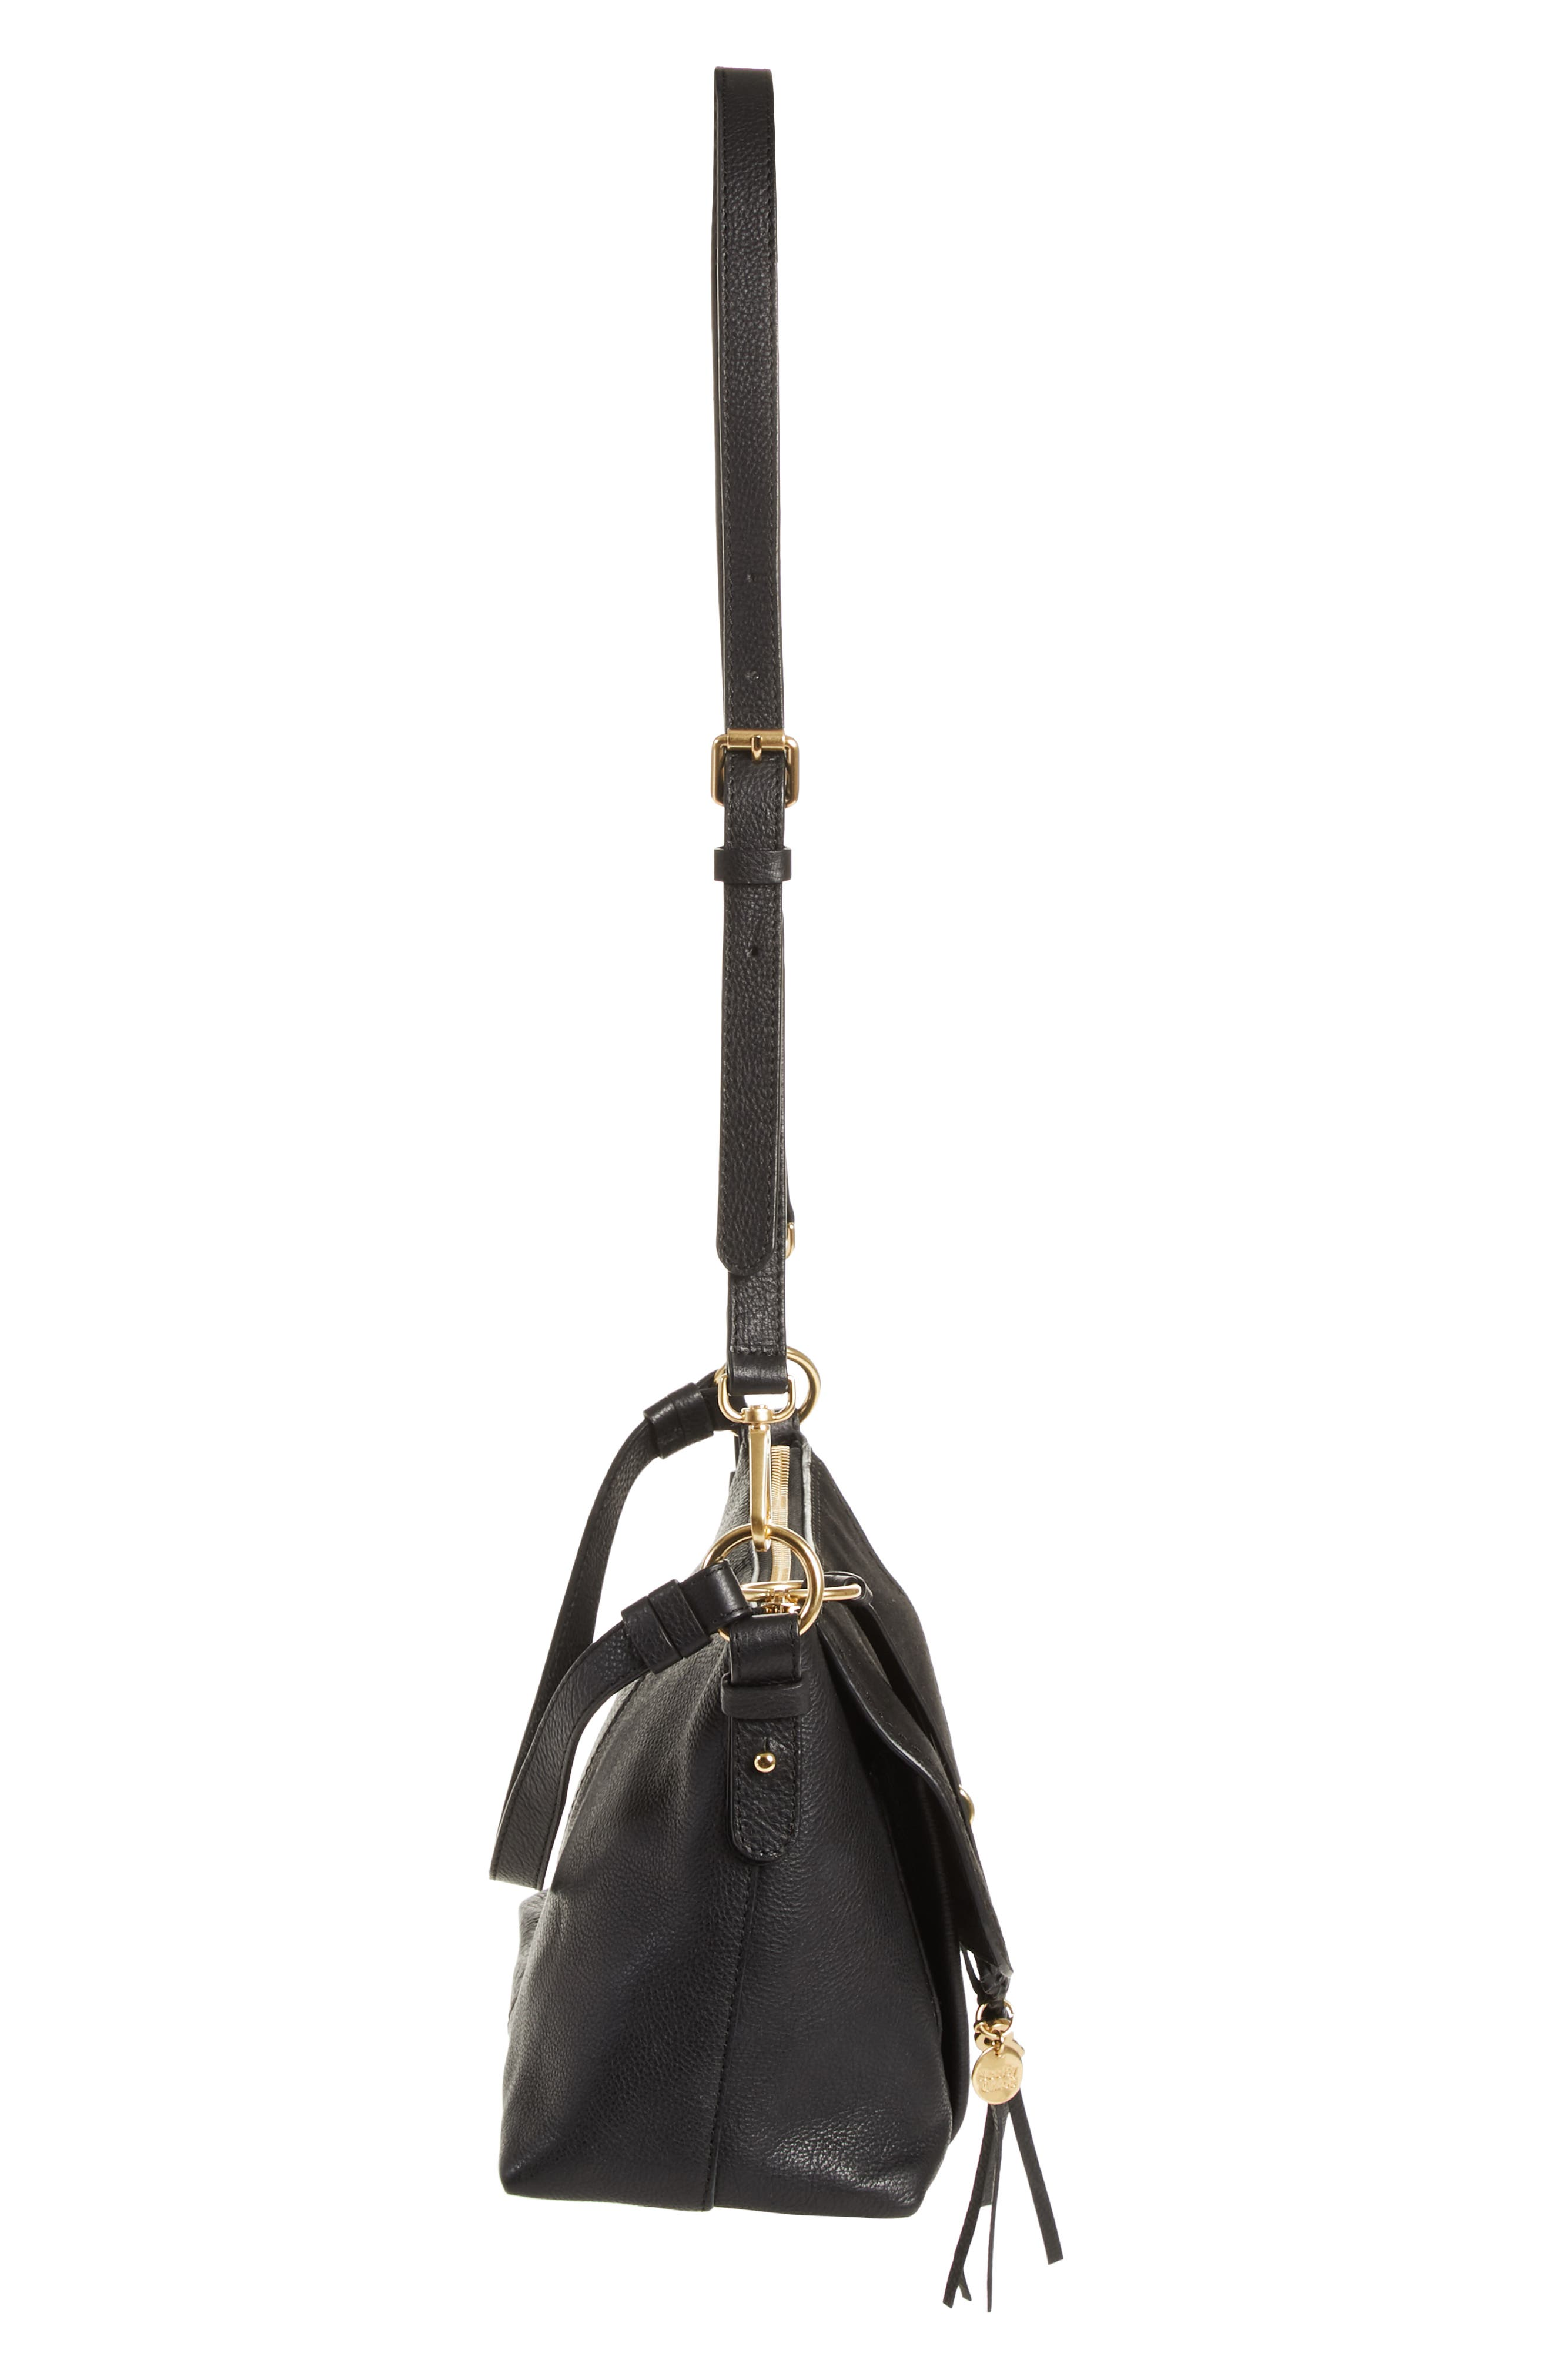 SEE BY CHLOÉ, Small Joan Suede & Leather Crossbody Bag, Alternate thumbnail 5, color, BLACK